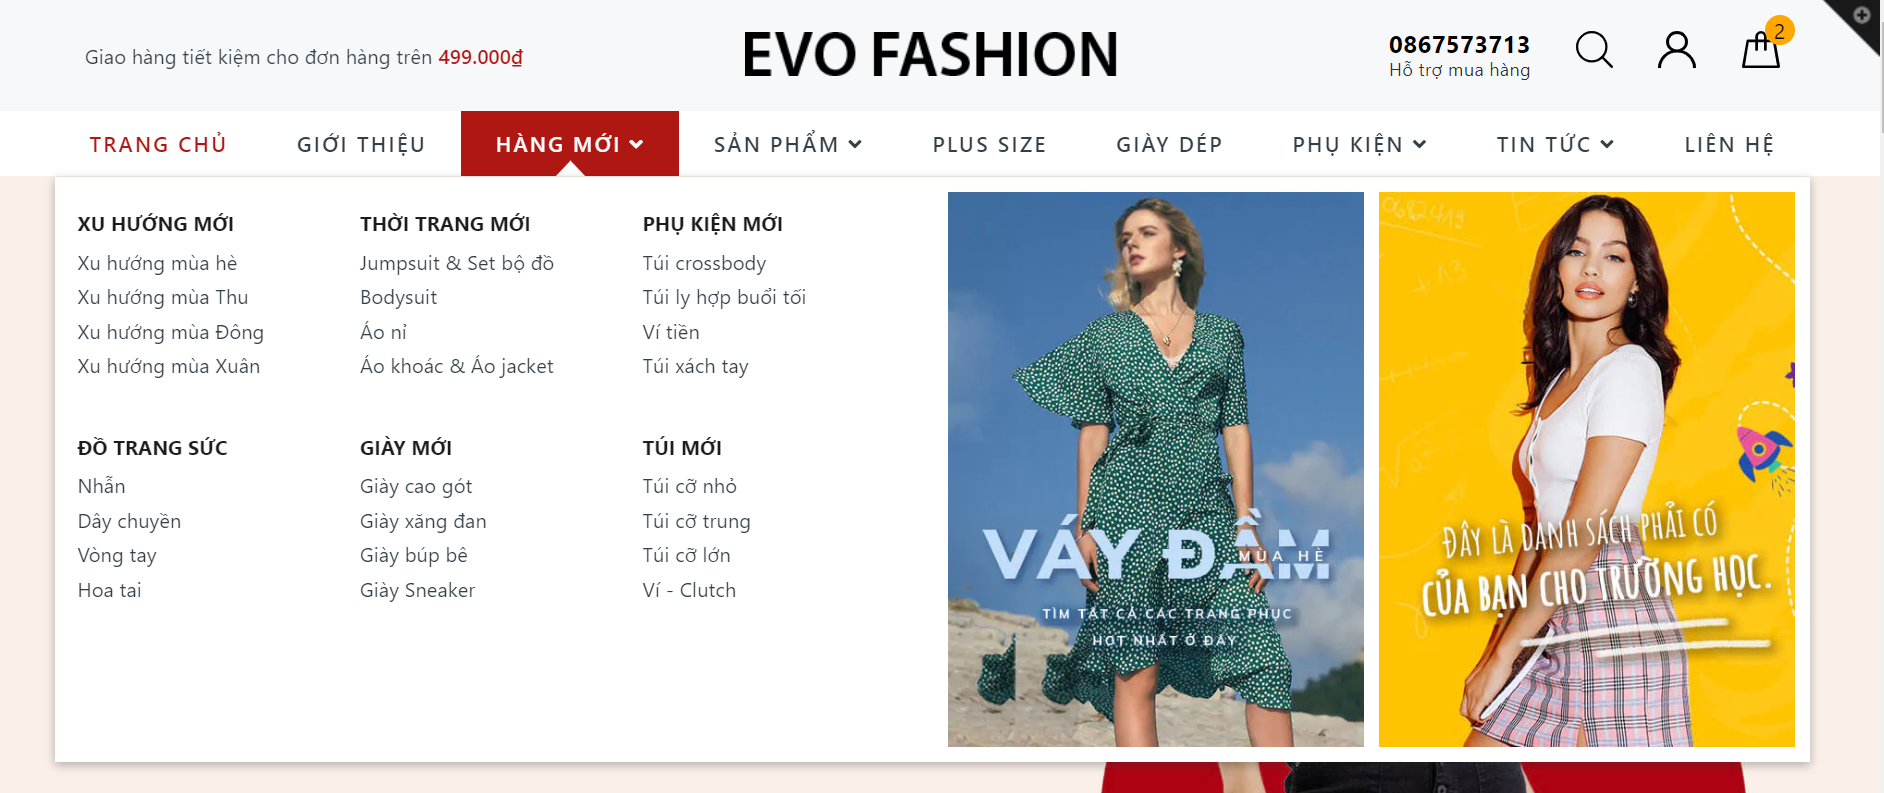 Evo Fashion menu